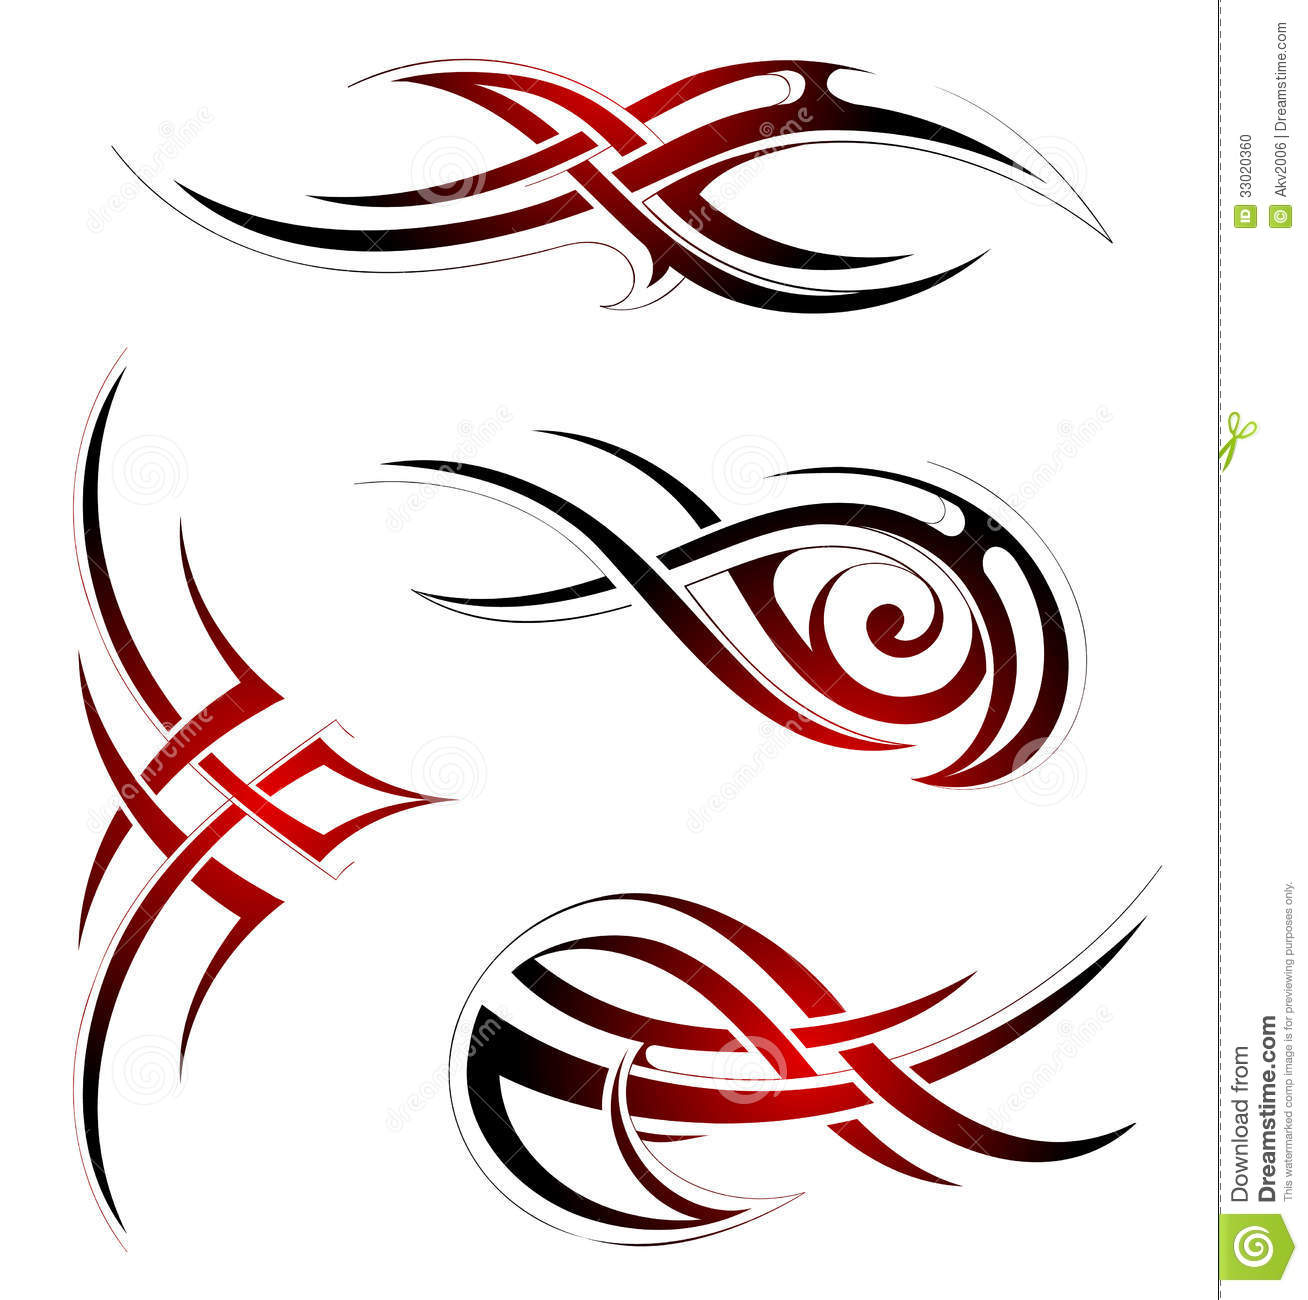 Tribal Art Stock Vector Illustration Of Swirls Style Ideas And Designs